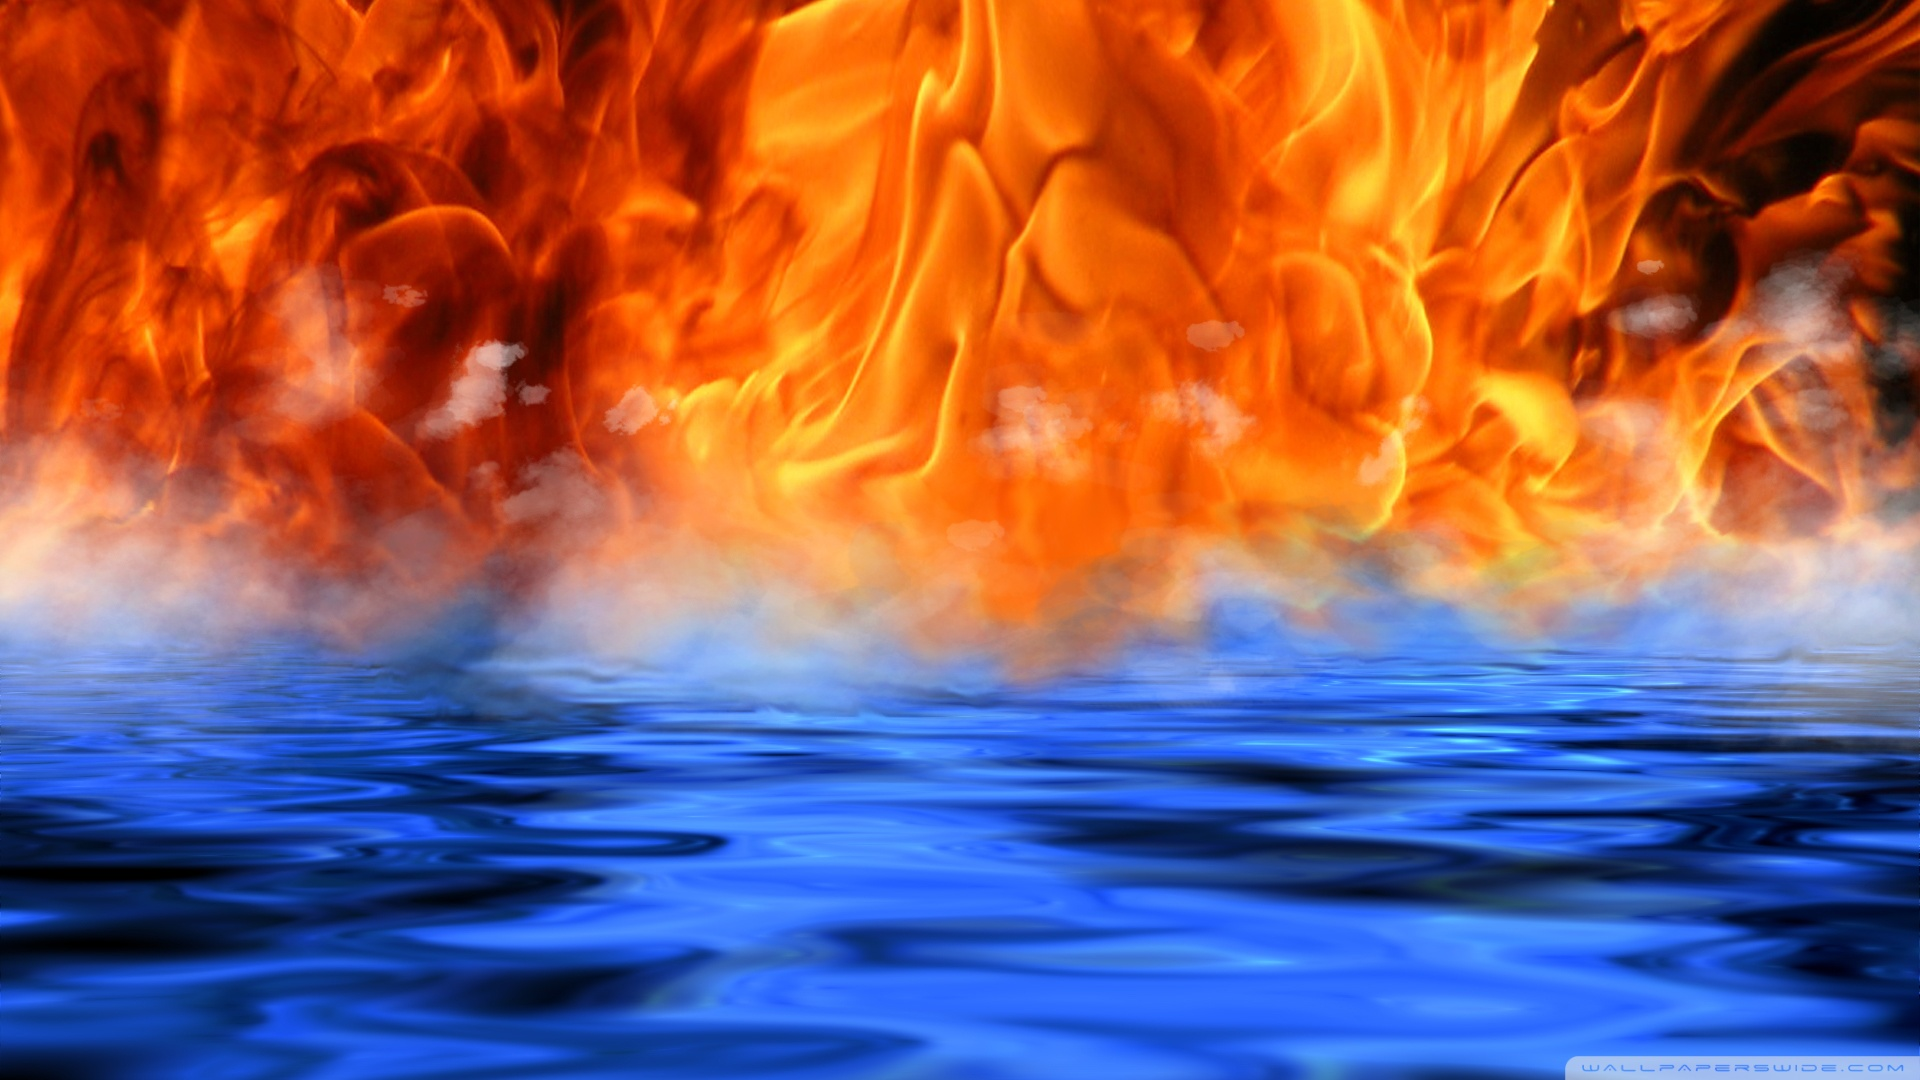 46 Cool Fire And Water Wallpaper On Wallpapersafari